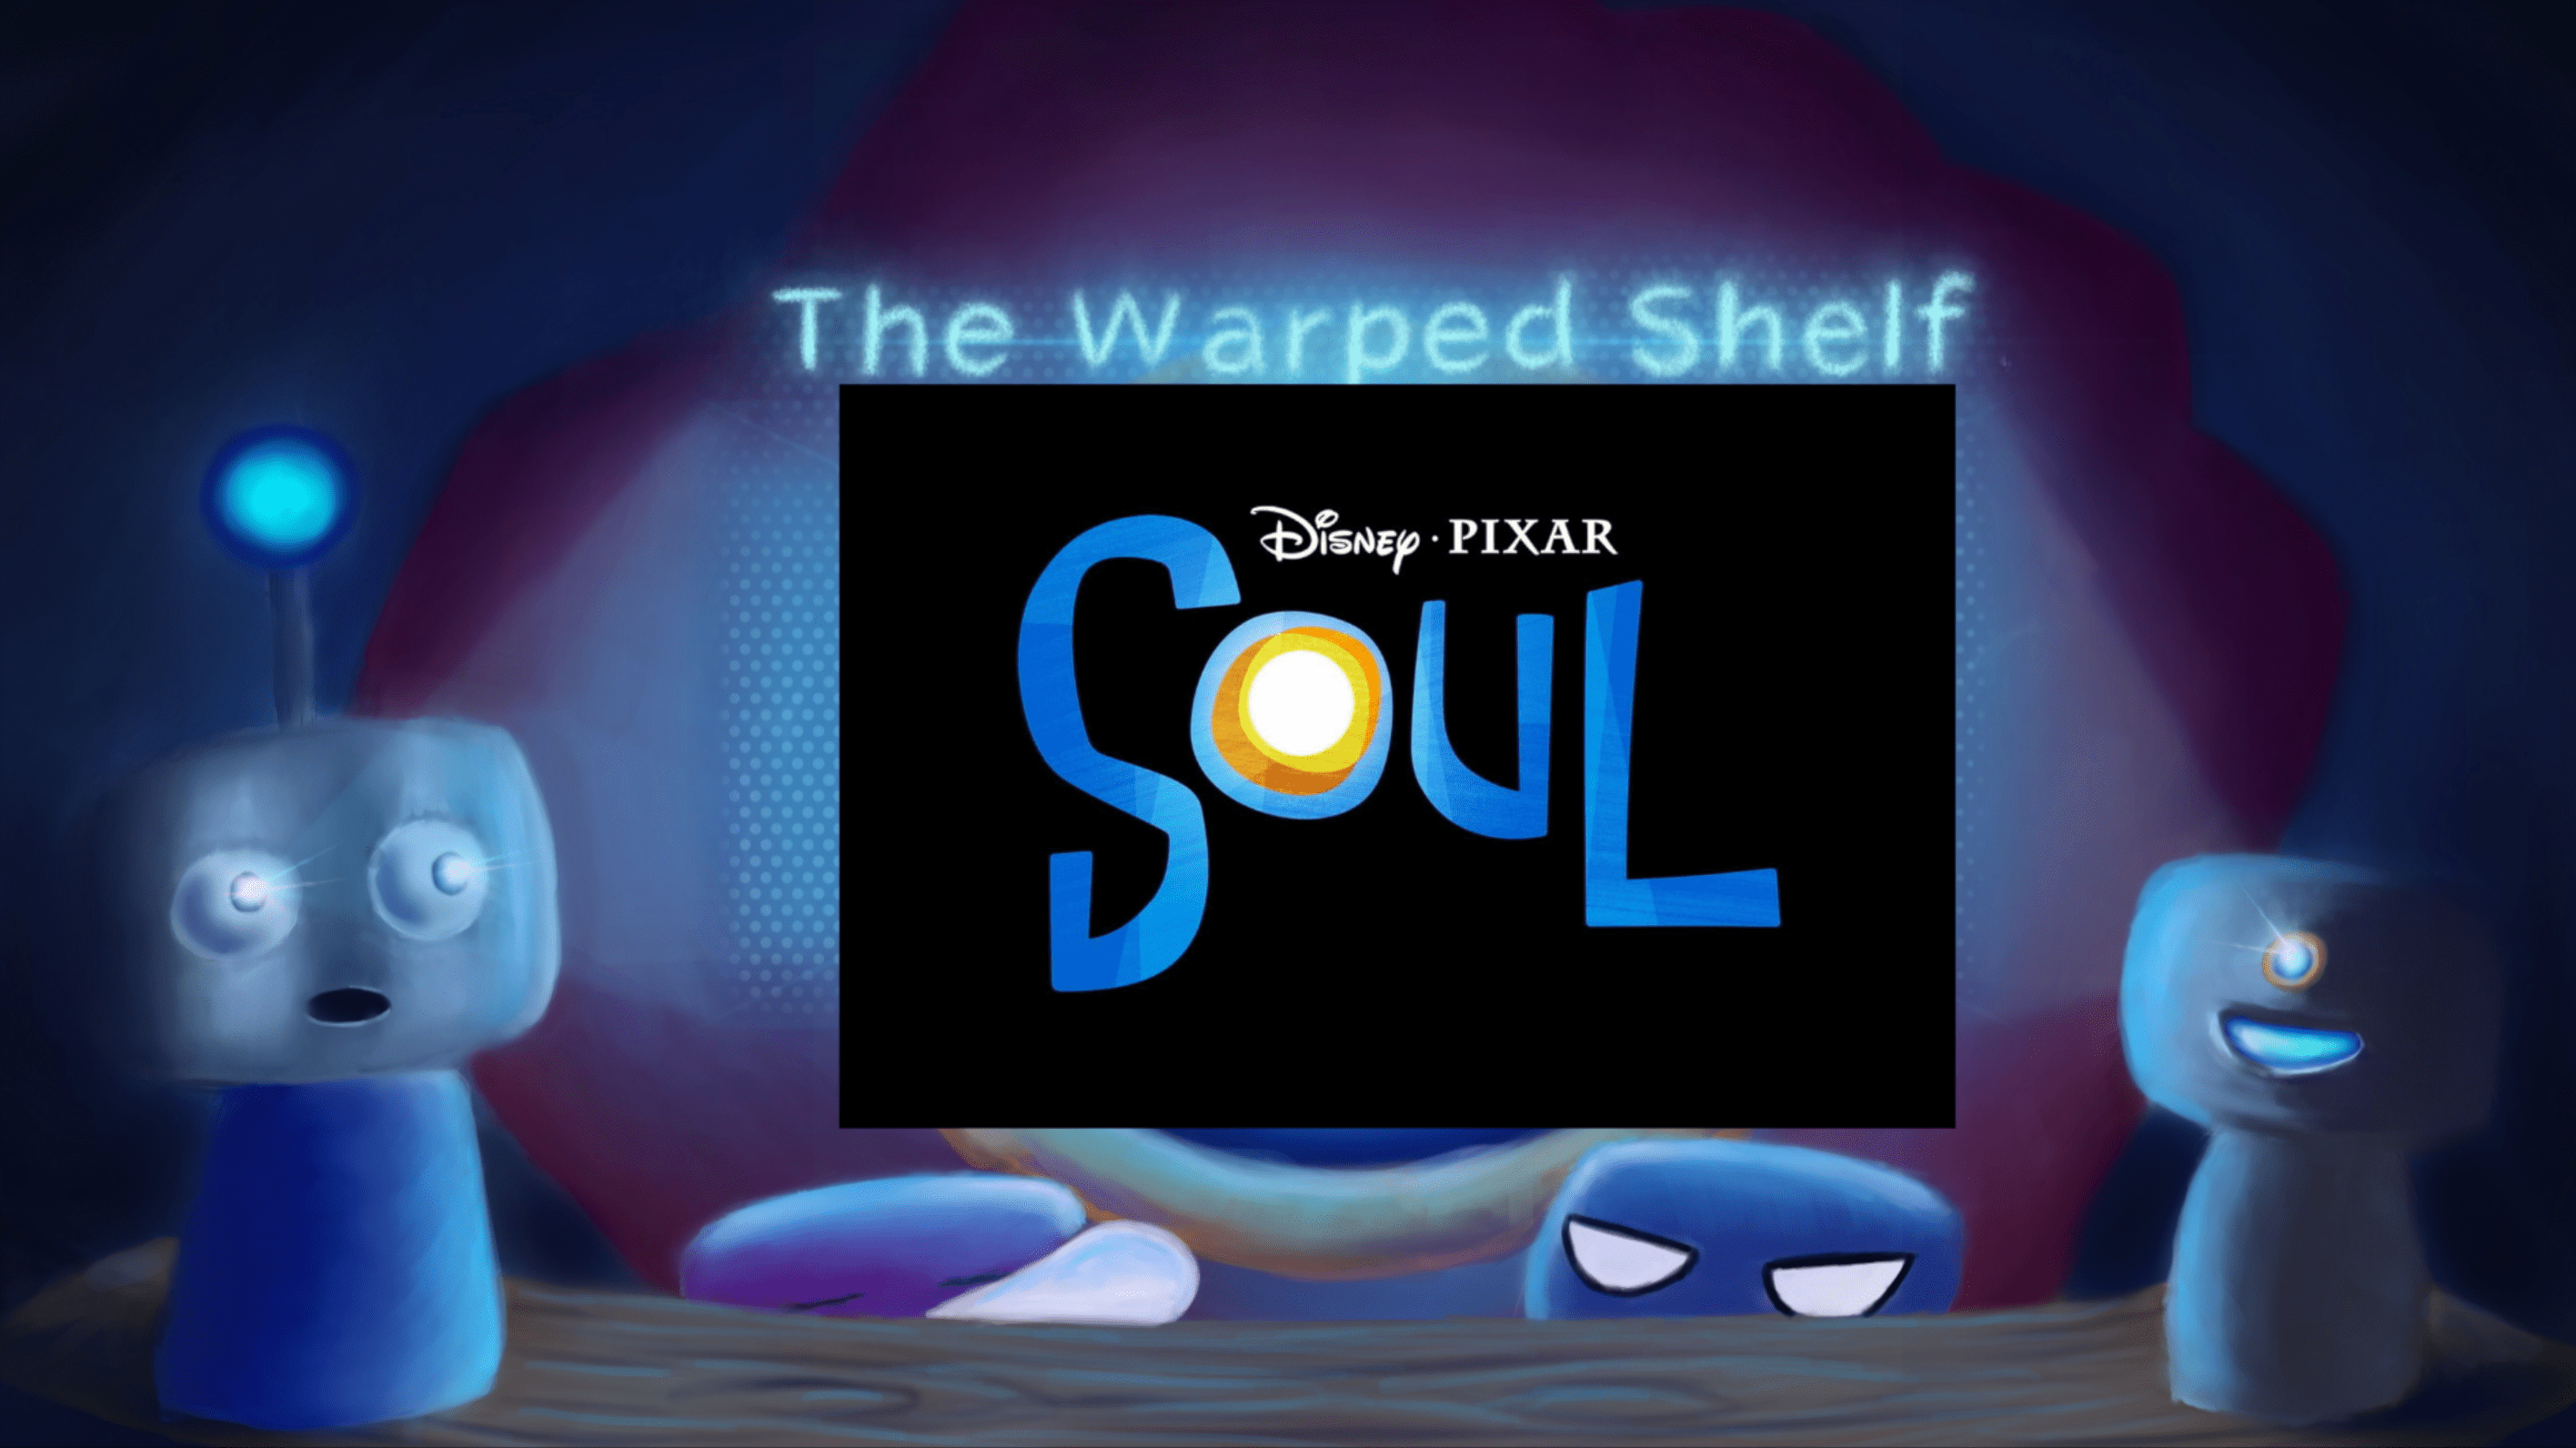 The Warped Shelf – Soul